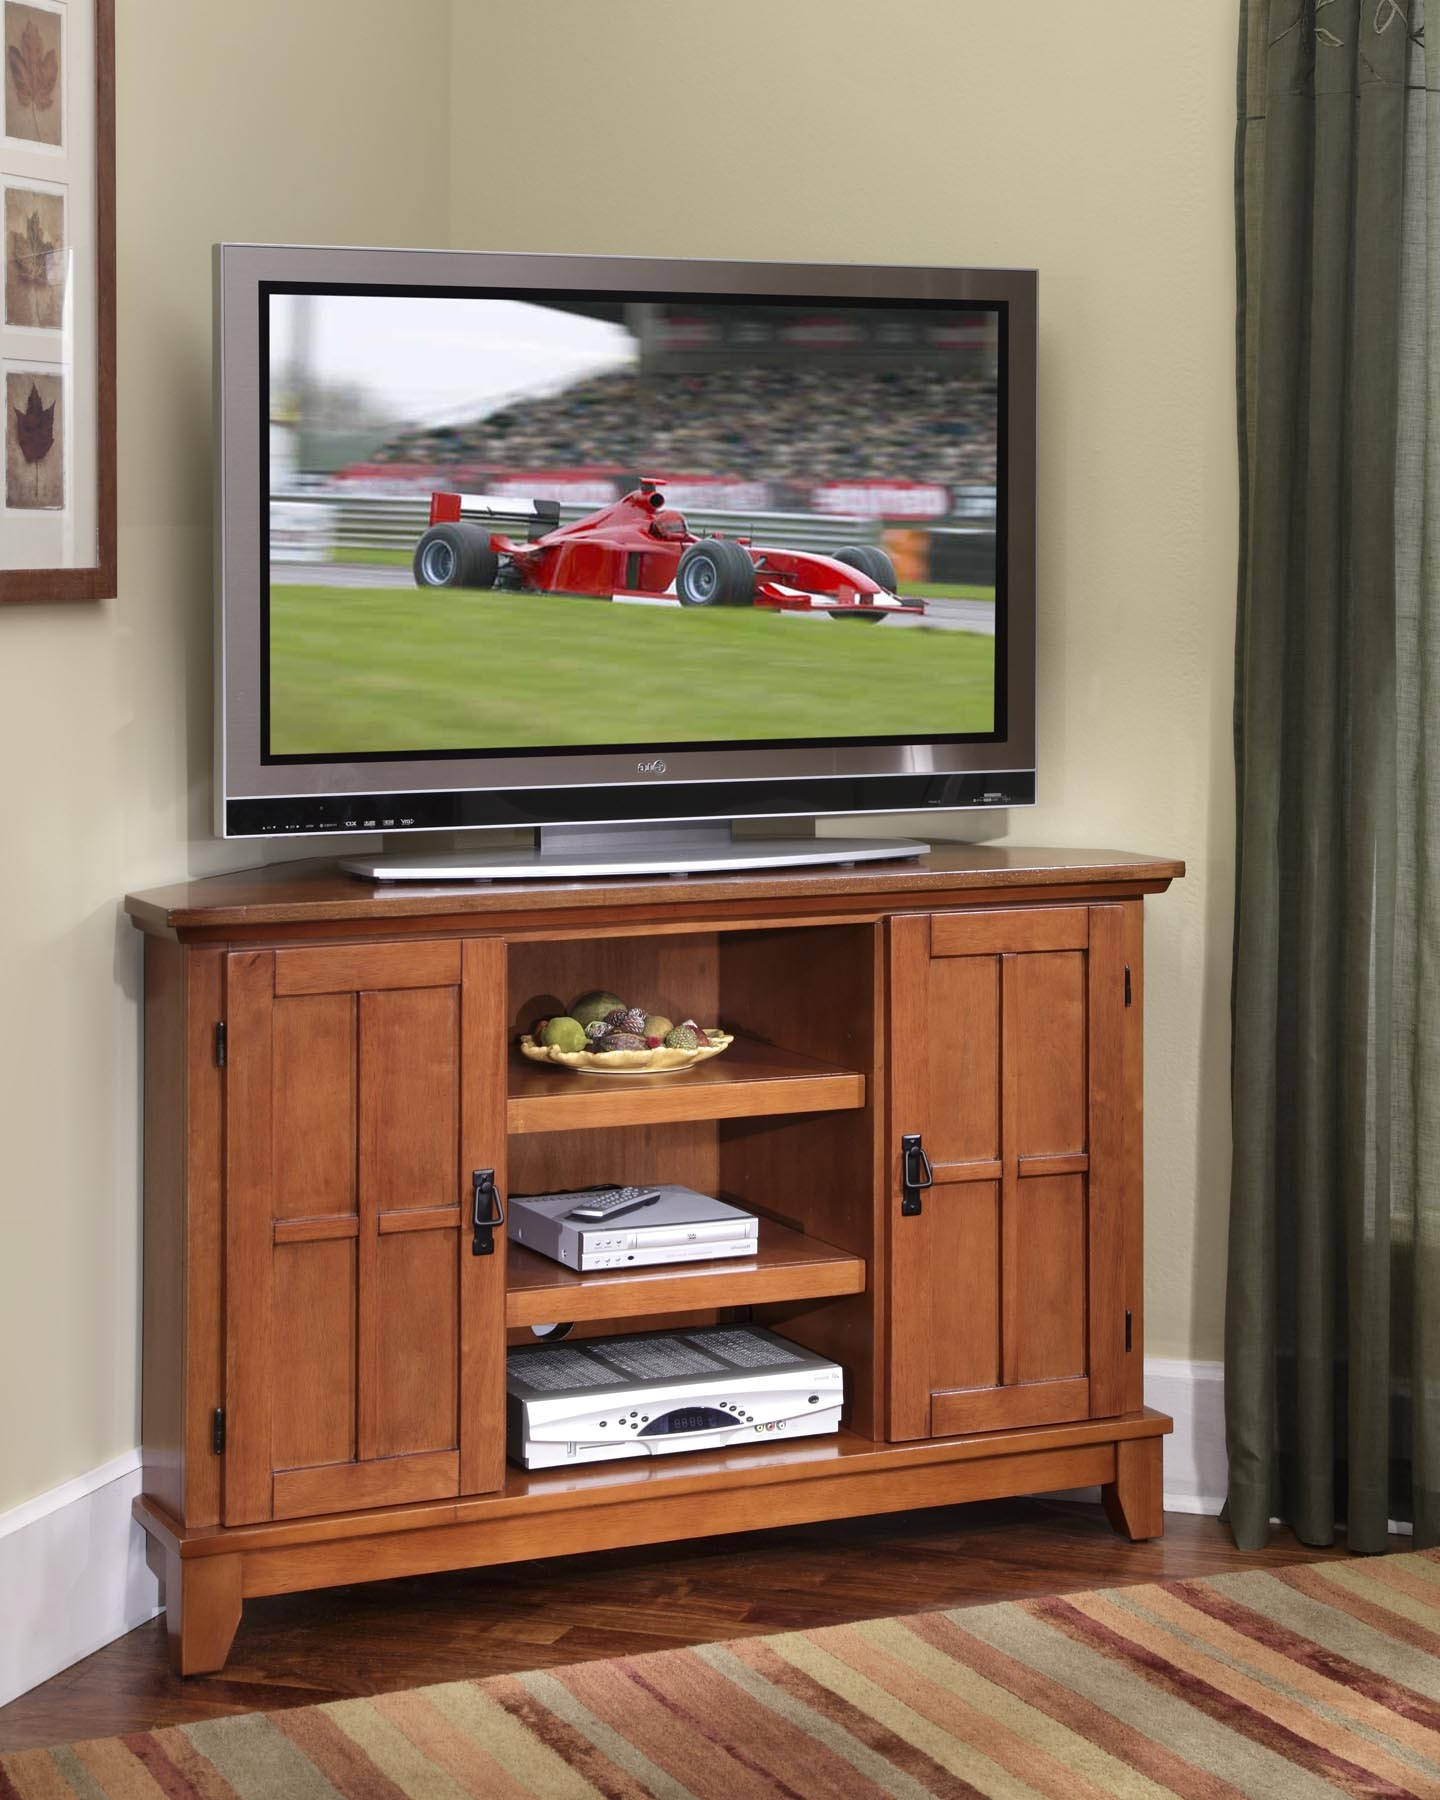 Oak Tv Stand Walmart Solid Wood Stands For Flat Screens Light Within Well Known Cheap Oak Tv Stands (View 2 of 20)